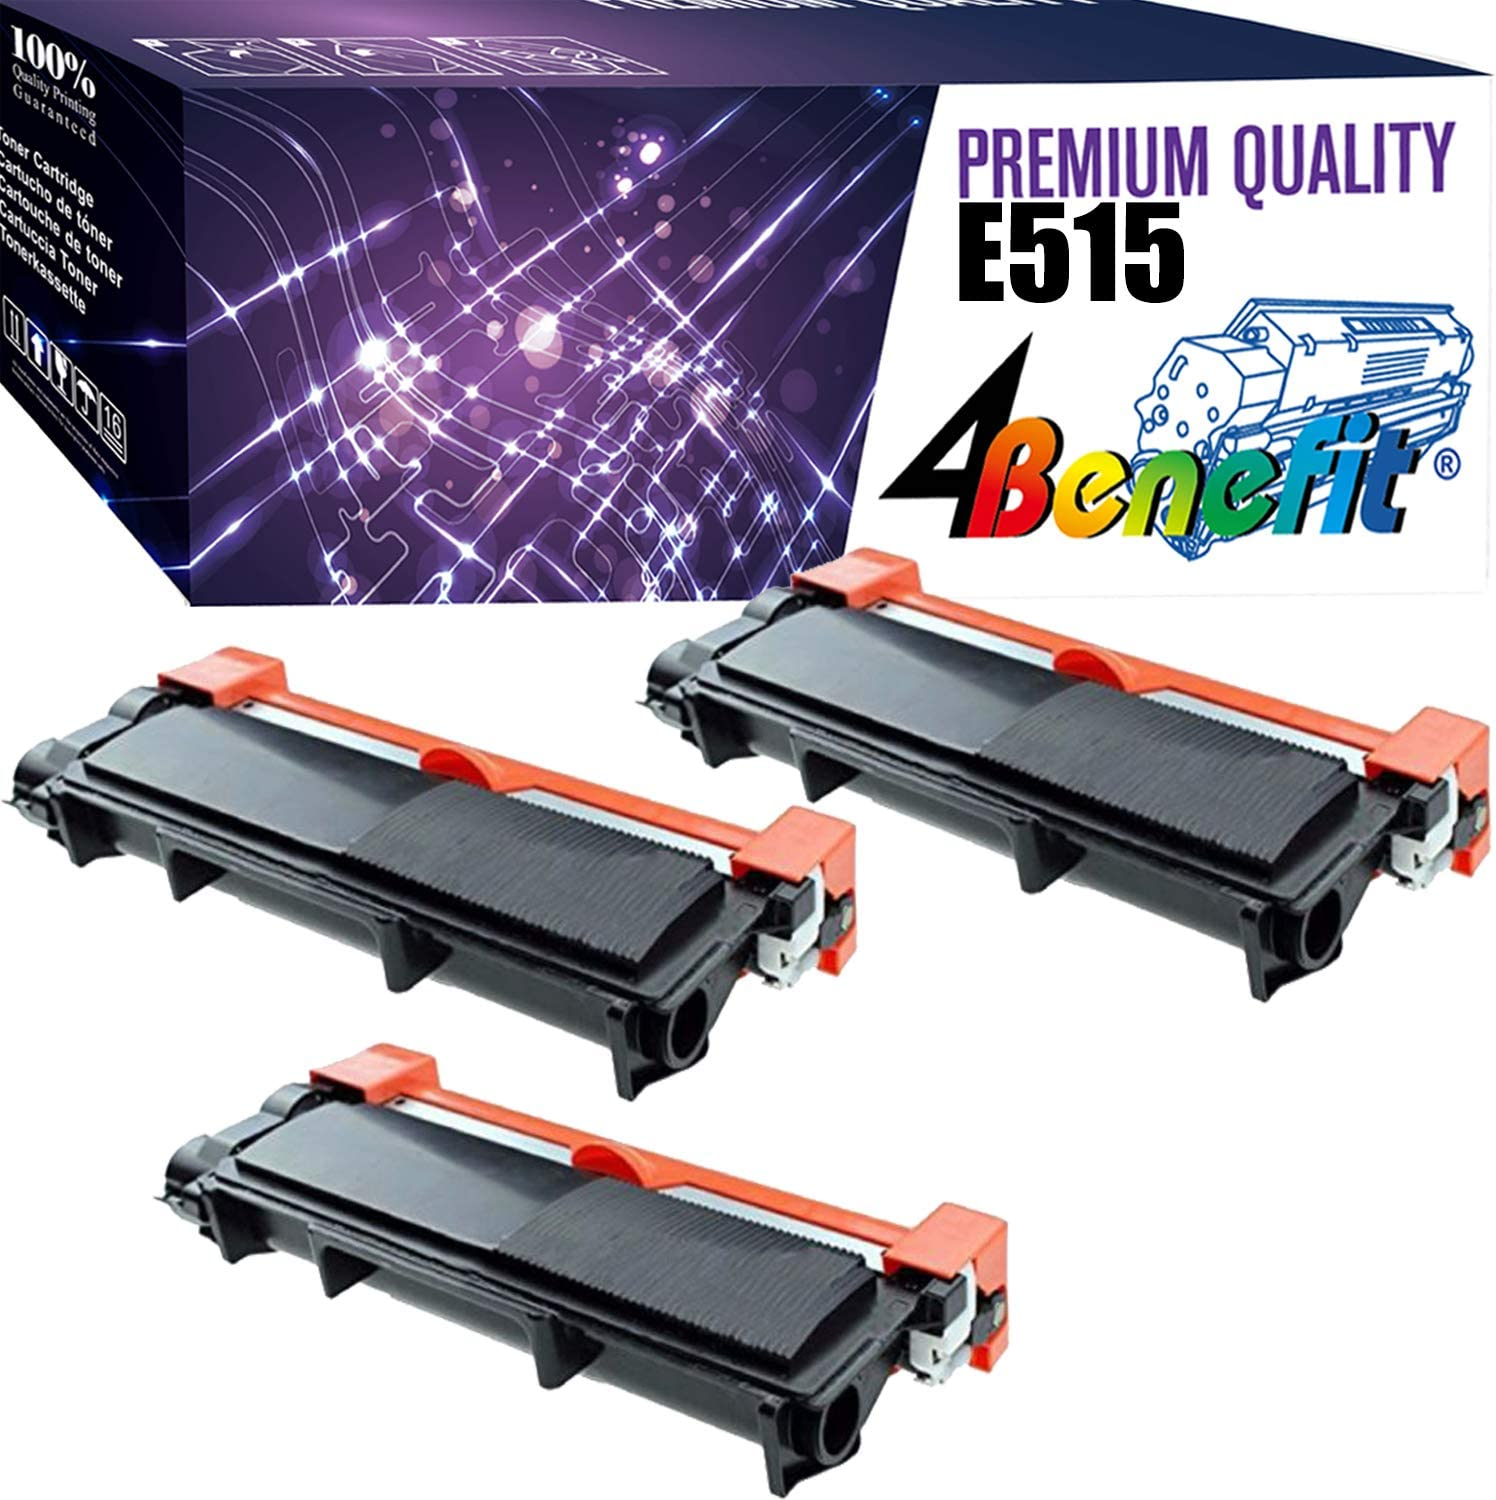 4Benefit Compatible Toner Cartridge Replacement for Dell E310 E515 Used for Dell E310dw E515dw E514dw E515dn E310 E514 E515 Printers(3-Pack, Black)